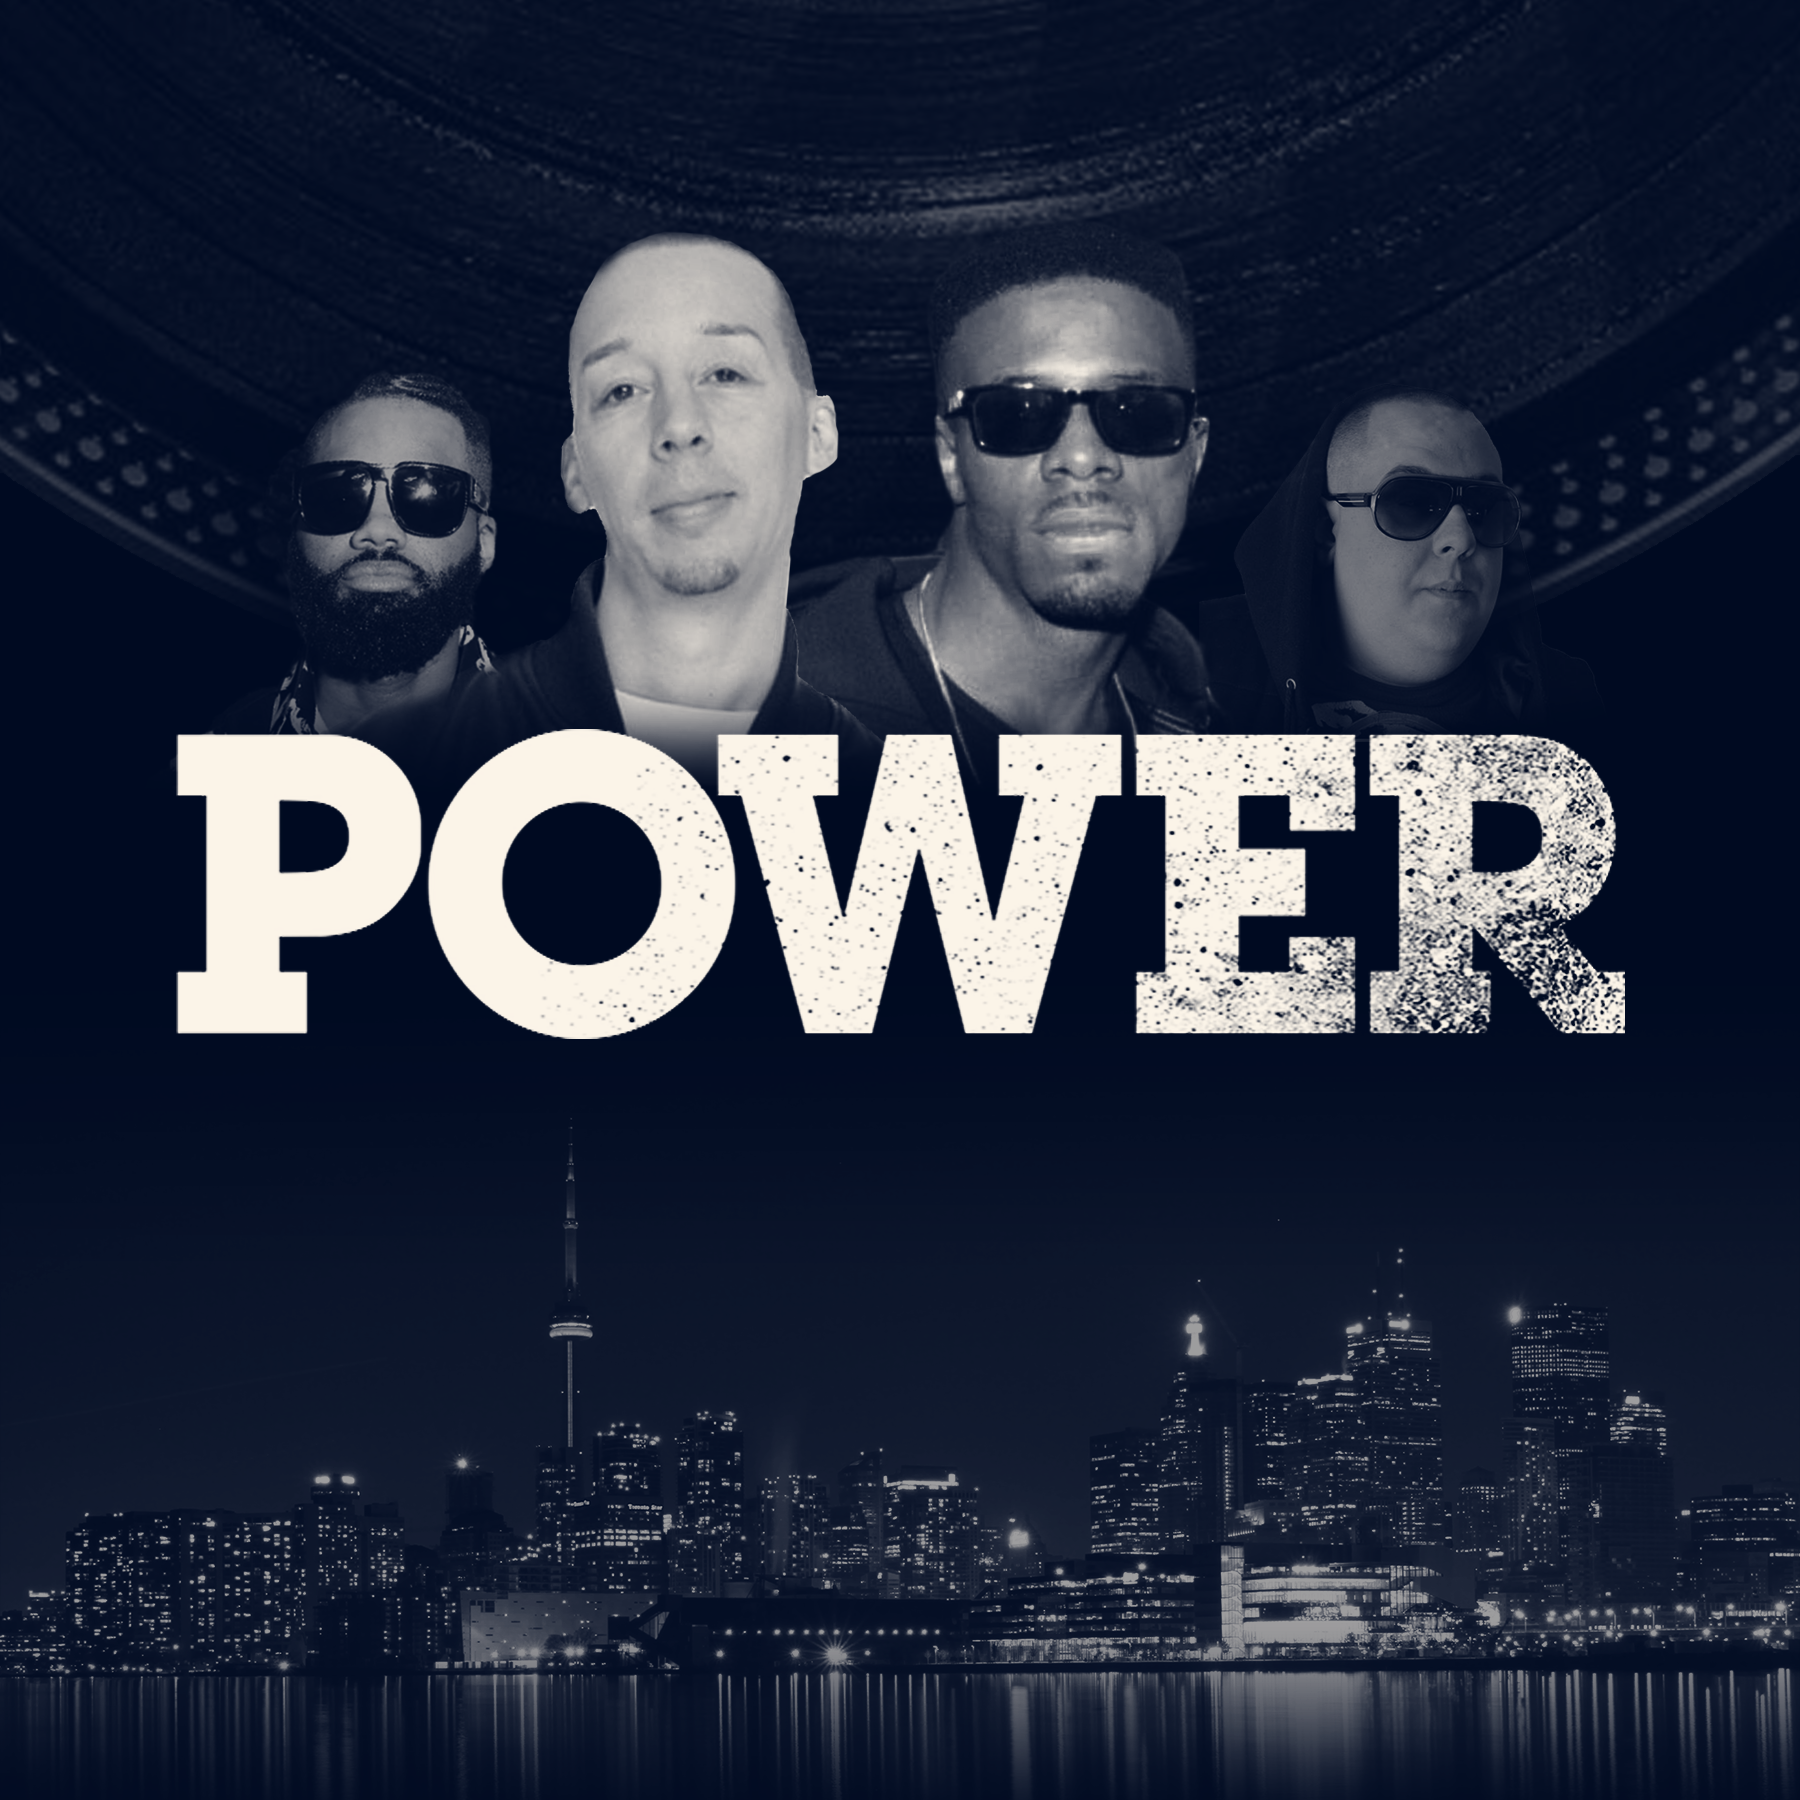 Power - The Long Weekend Sunday Party (OCT 13)